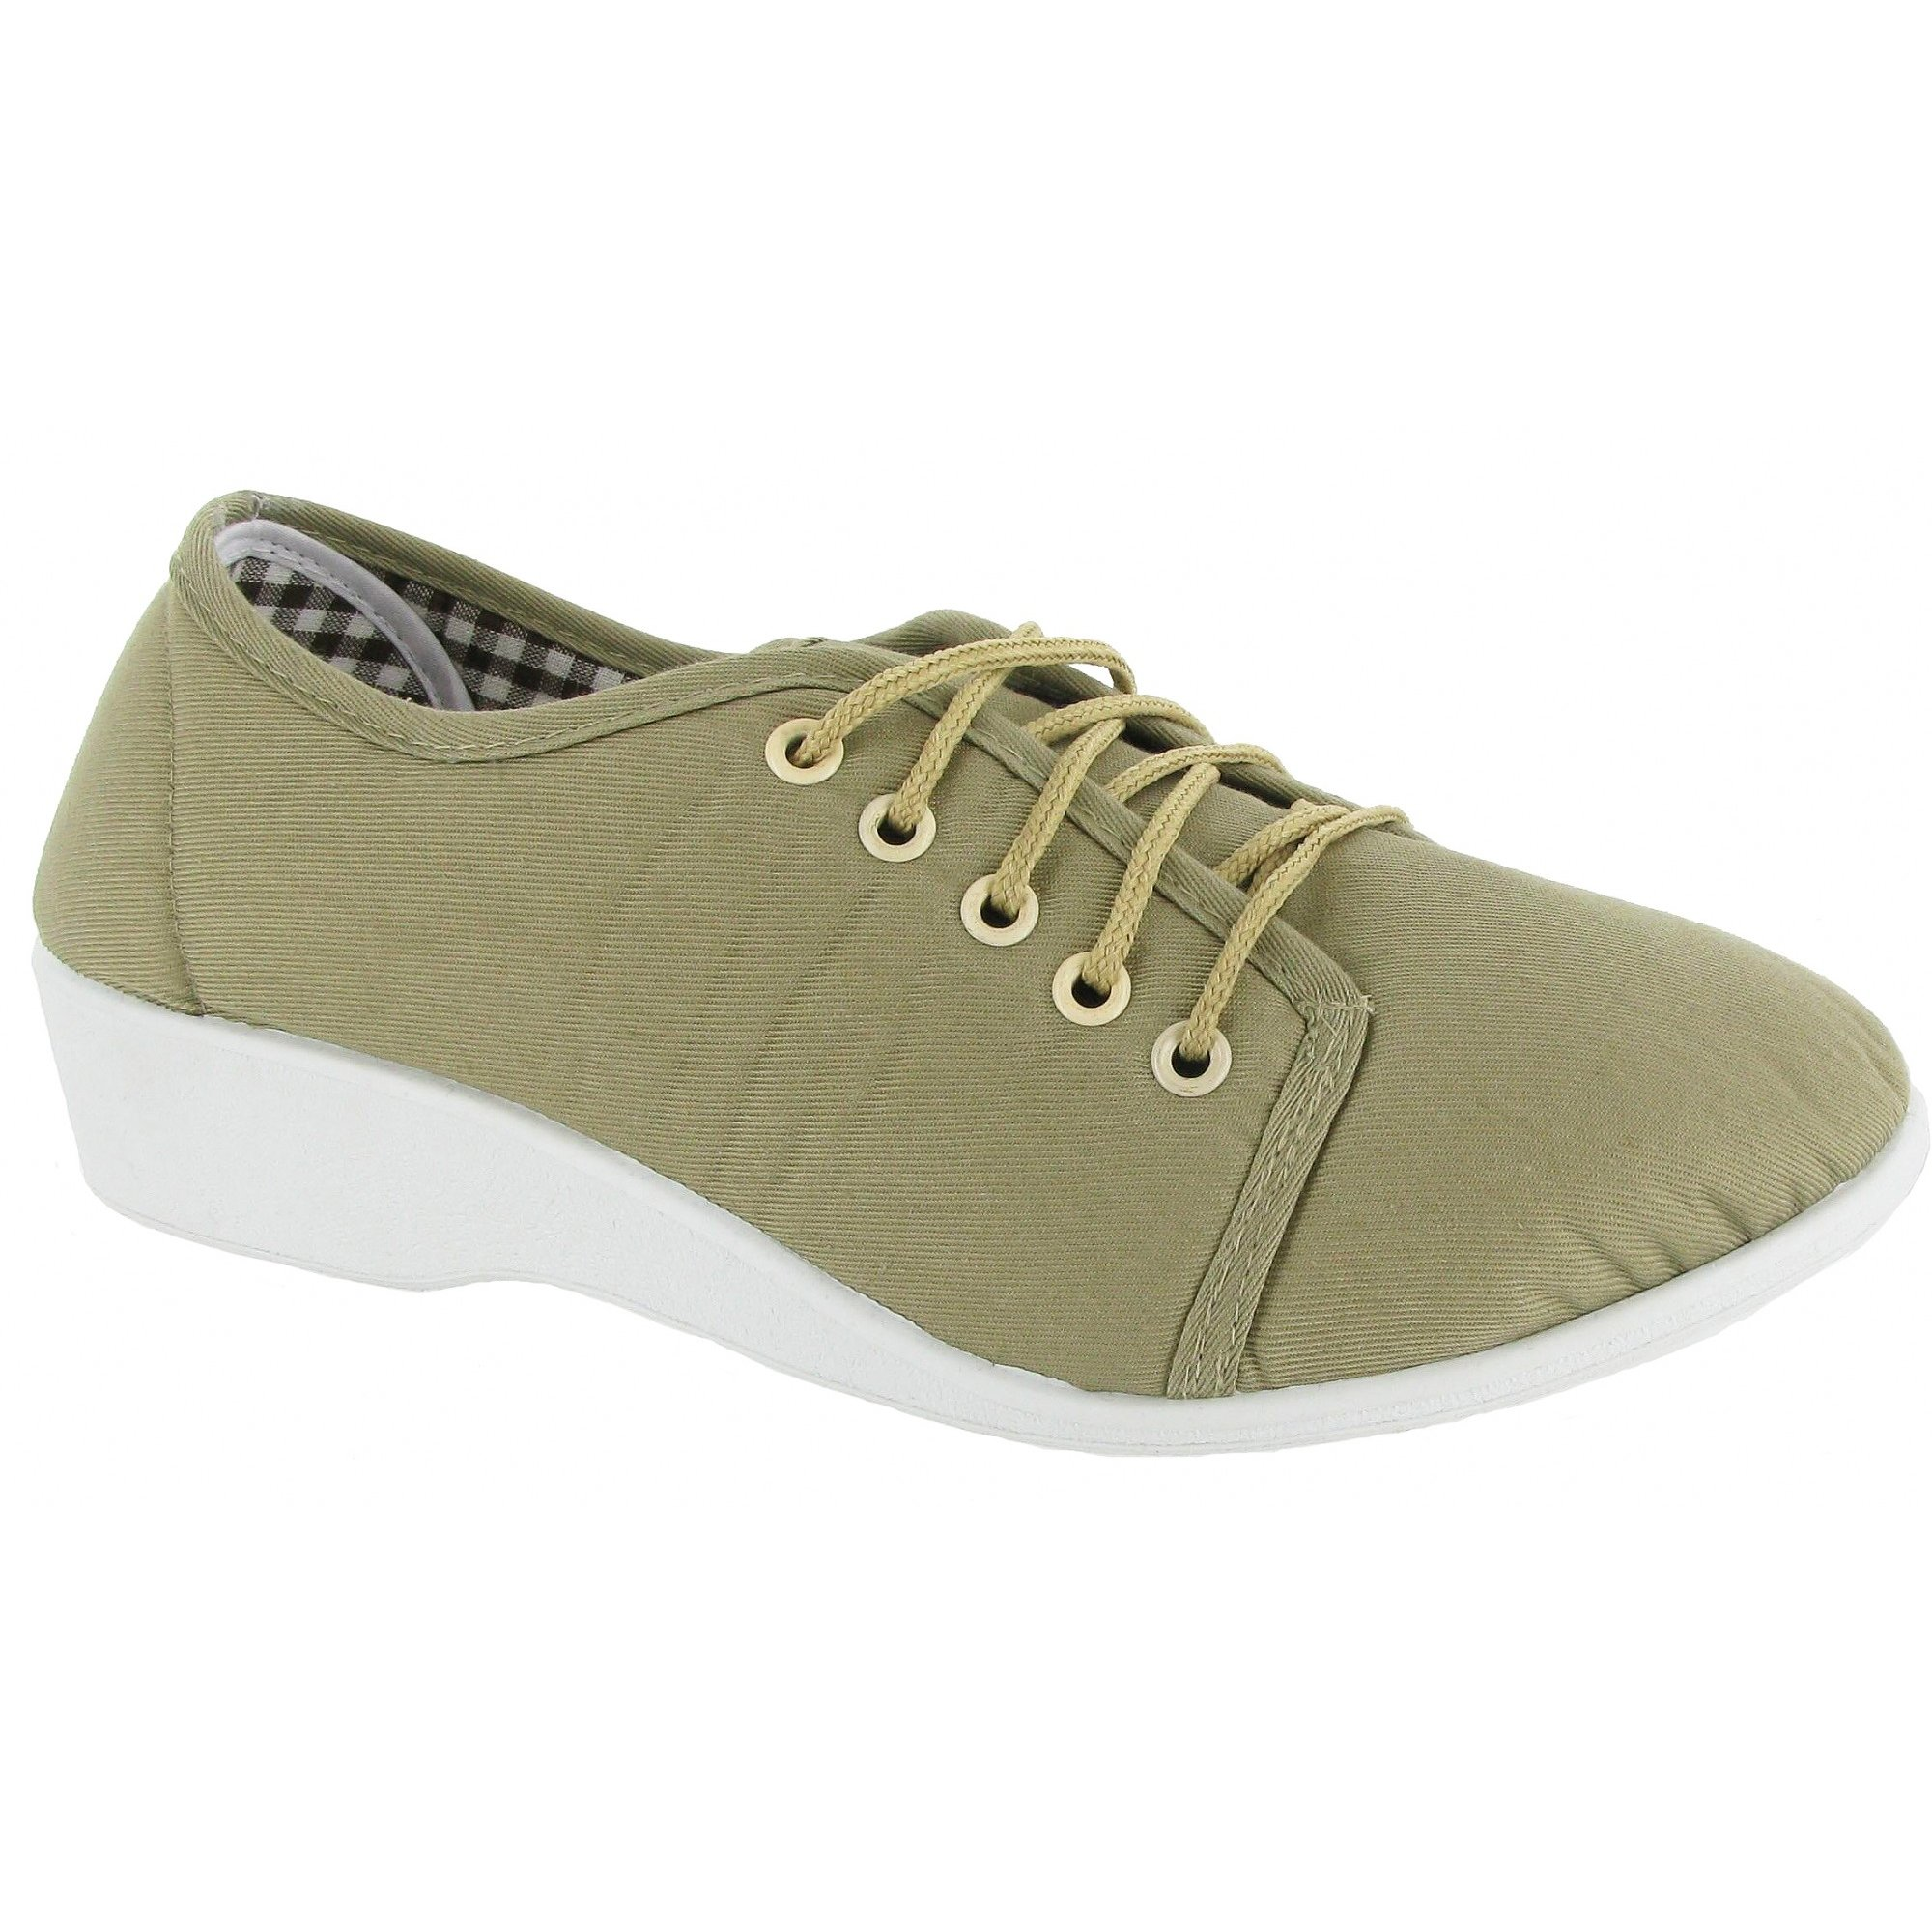 Canvas Lace Up Shoes For Womens